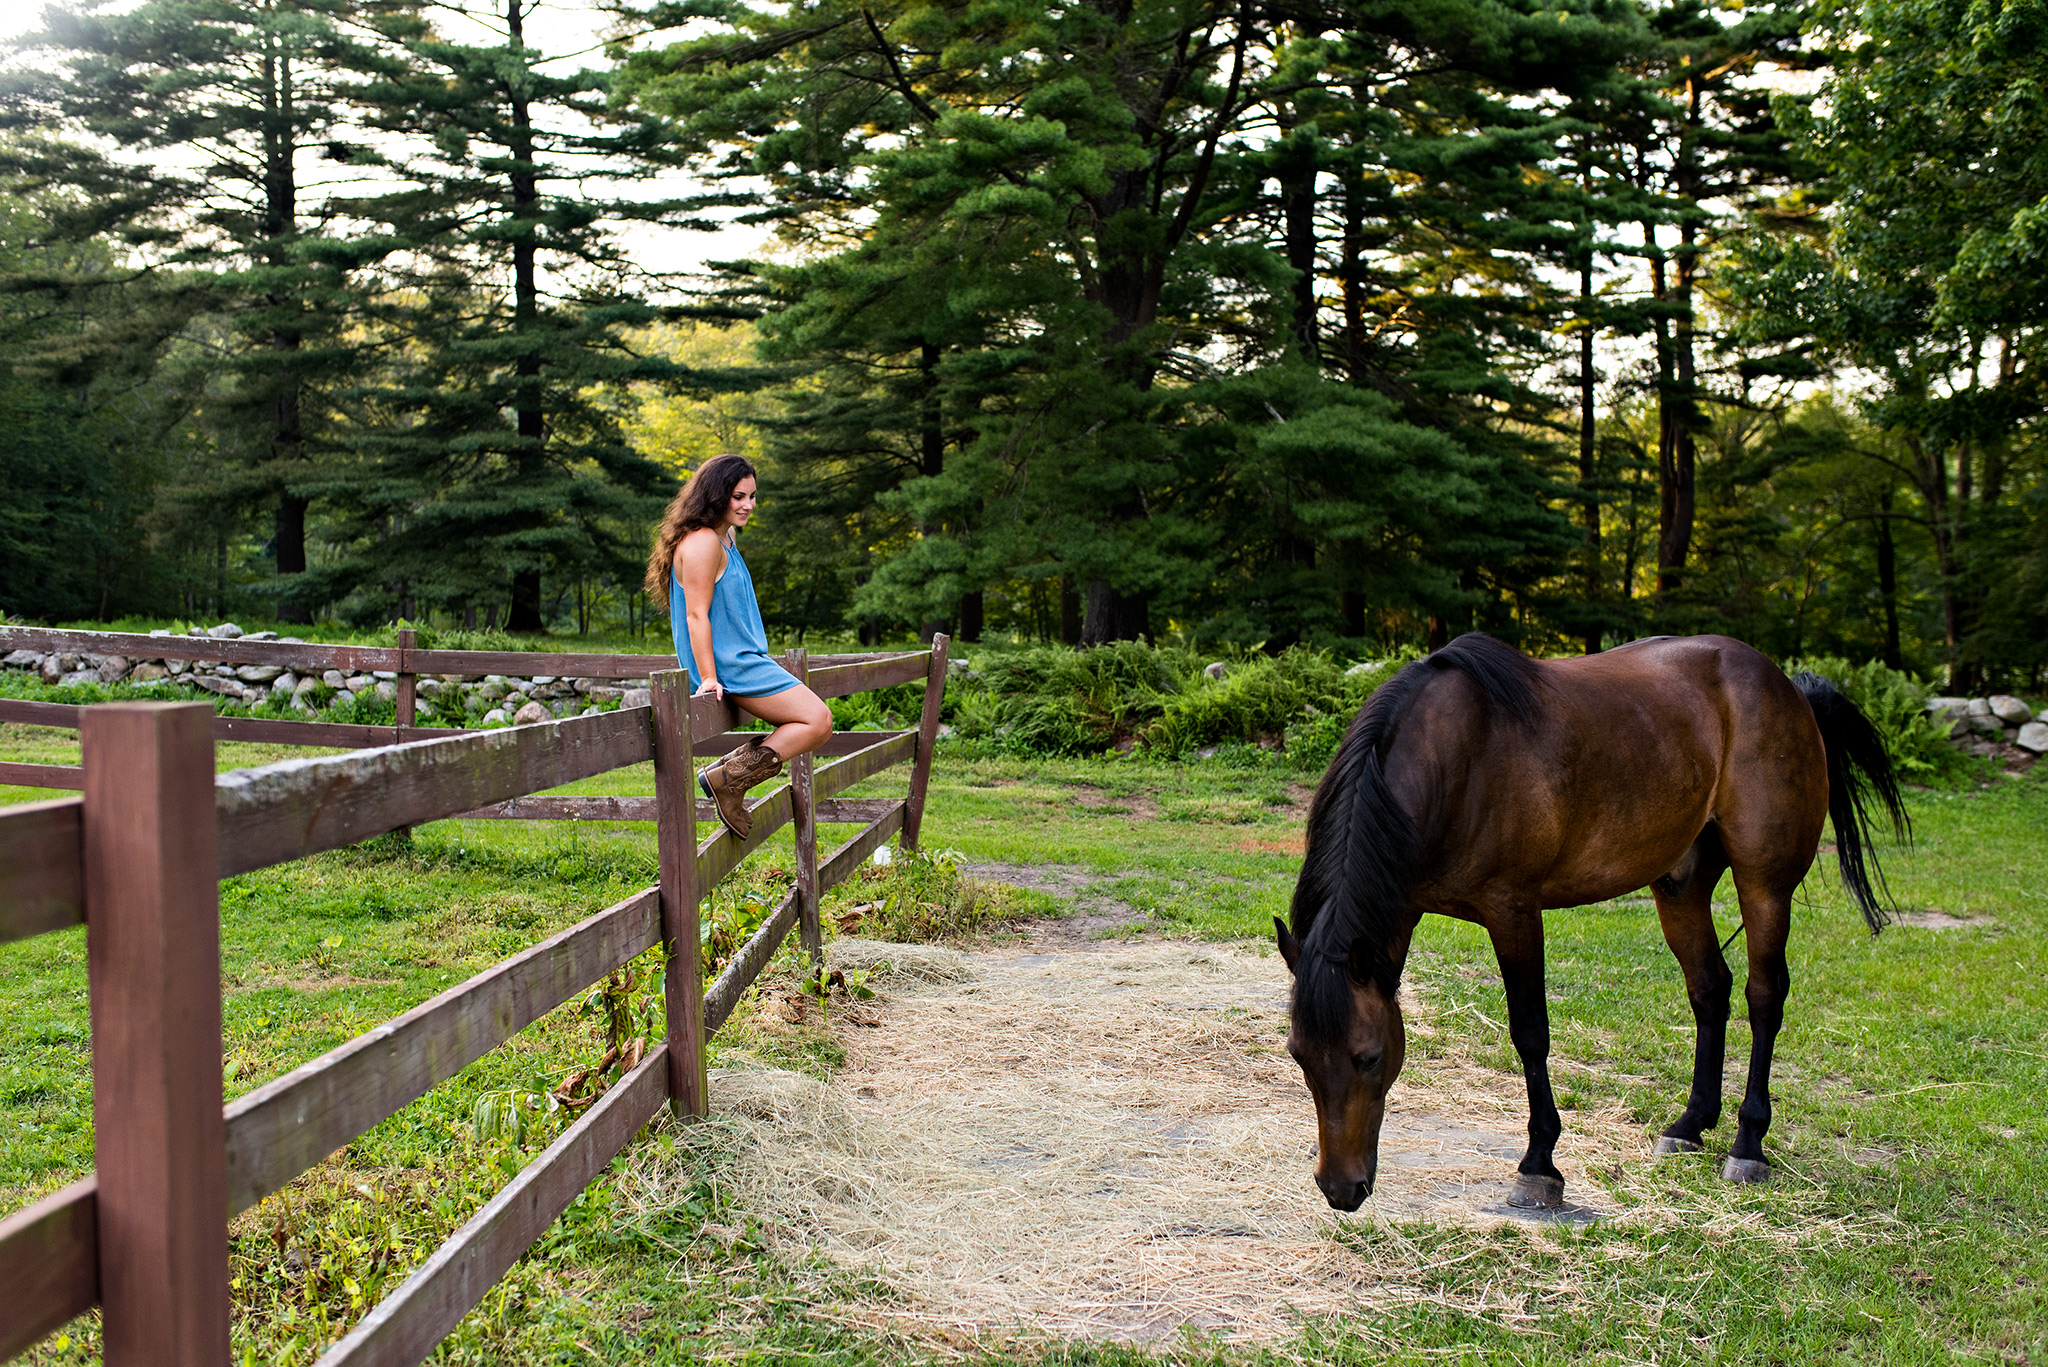 ct senior portrait photography with a horse on a farm